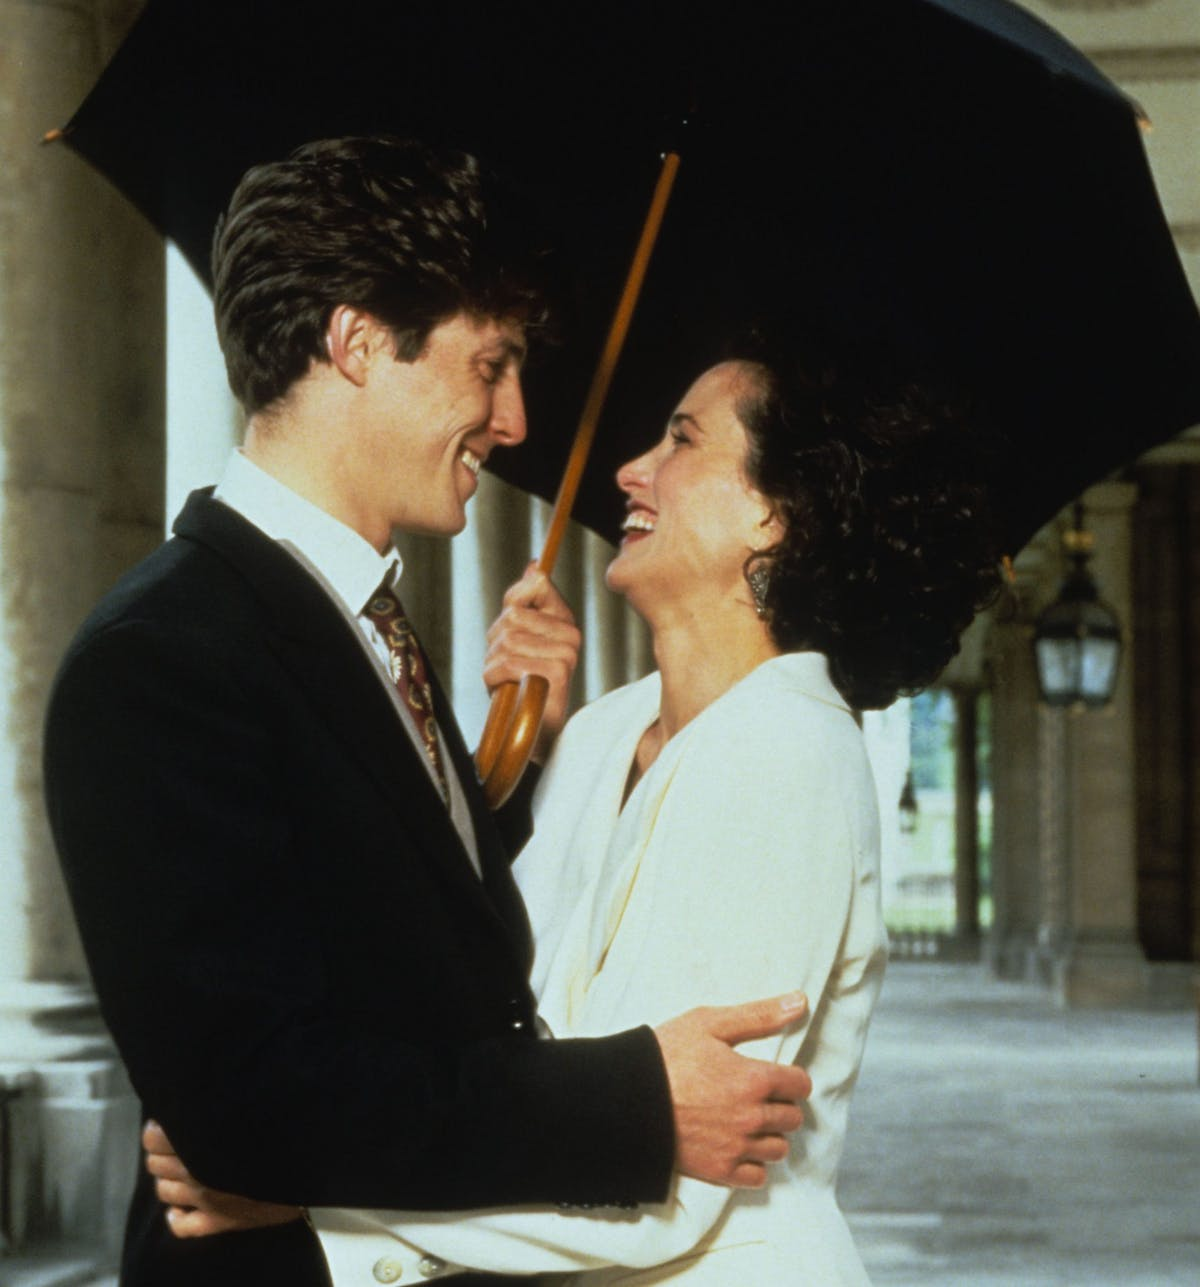 Four Weddings And A Funeral: Everything We Know About The